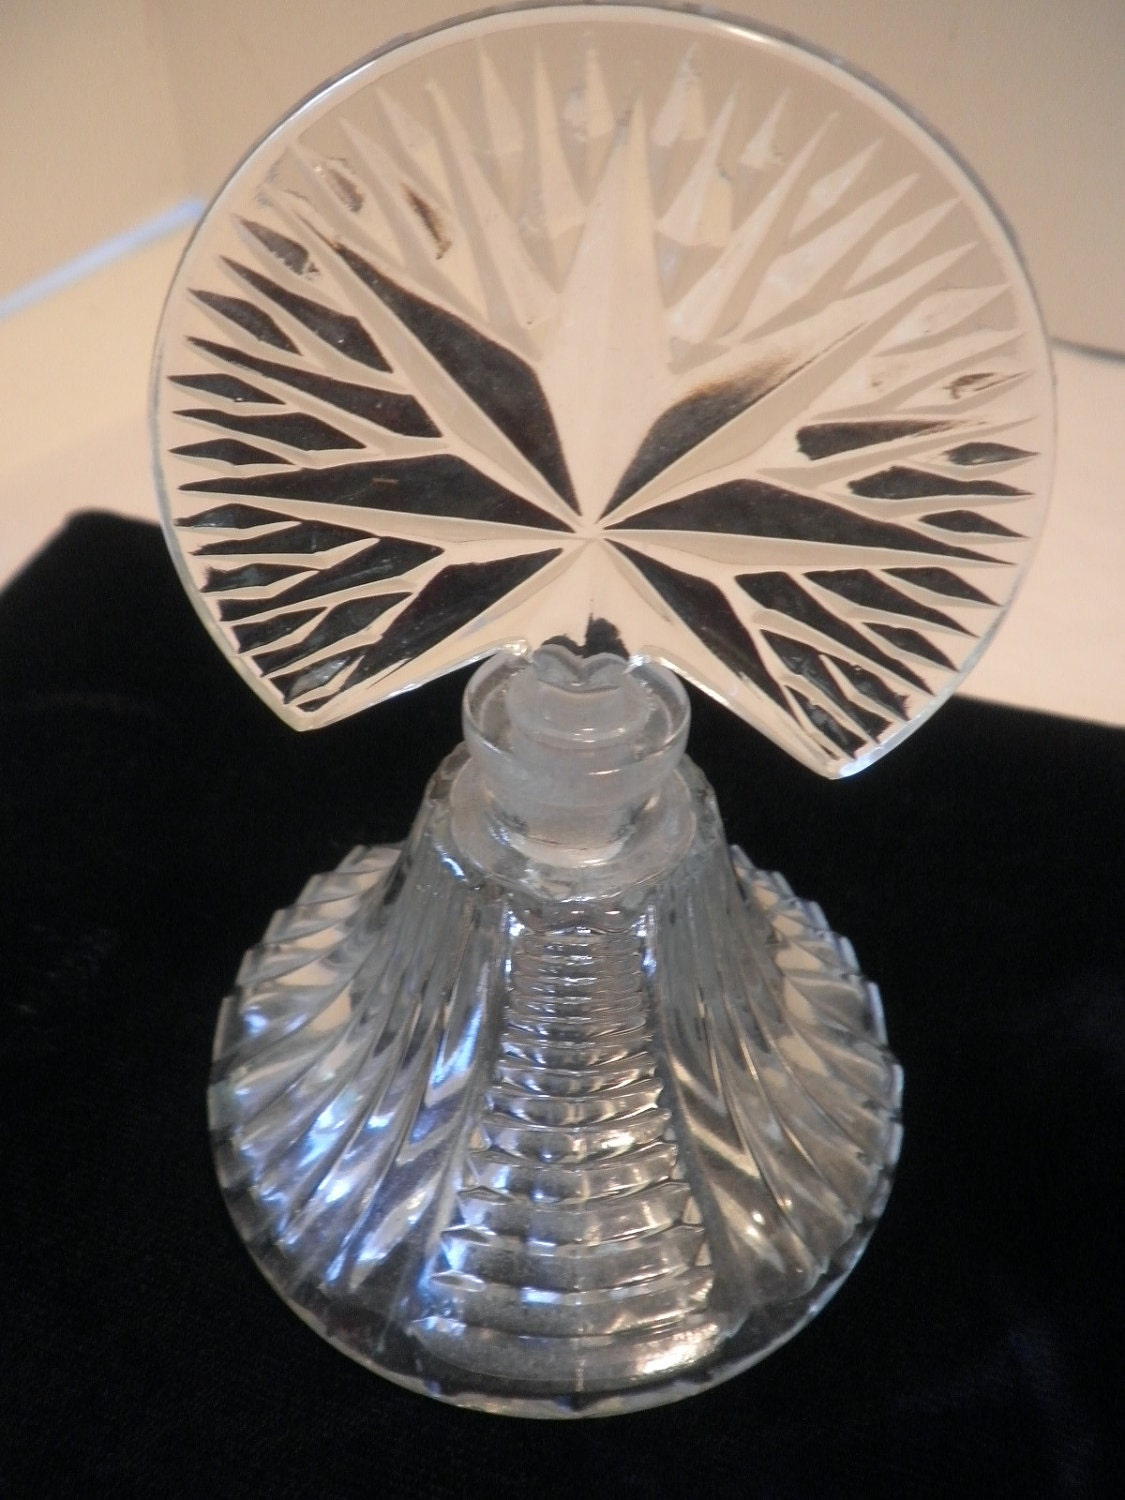 Starburst cut glass perfume bottle - Starburst glassware ...